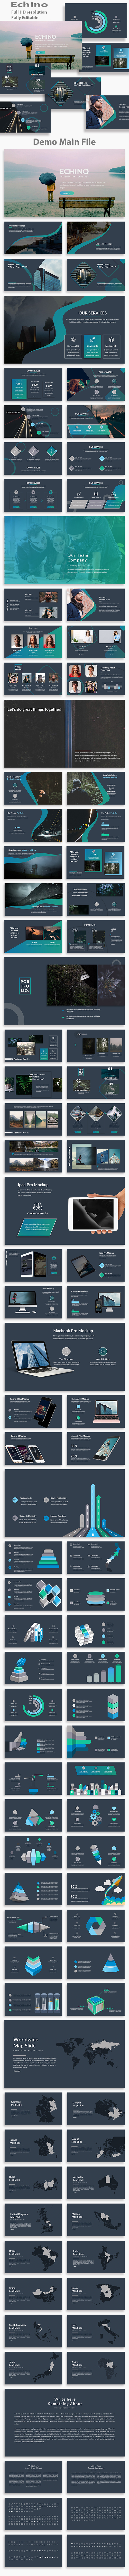 Echino Multipurpose PowerPoint Template - Creative PowerPoint Templates